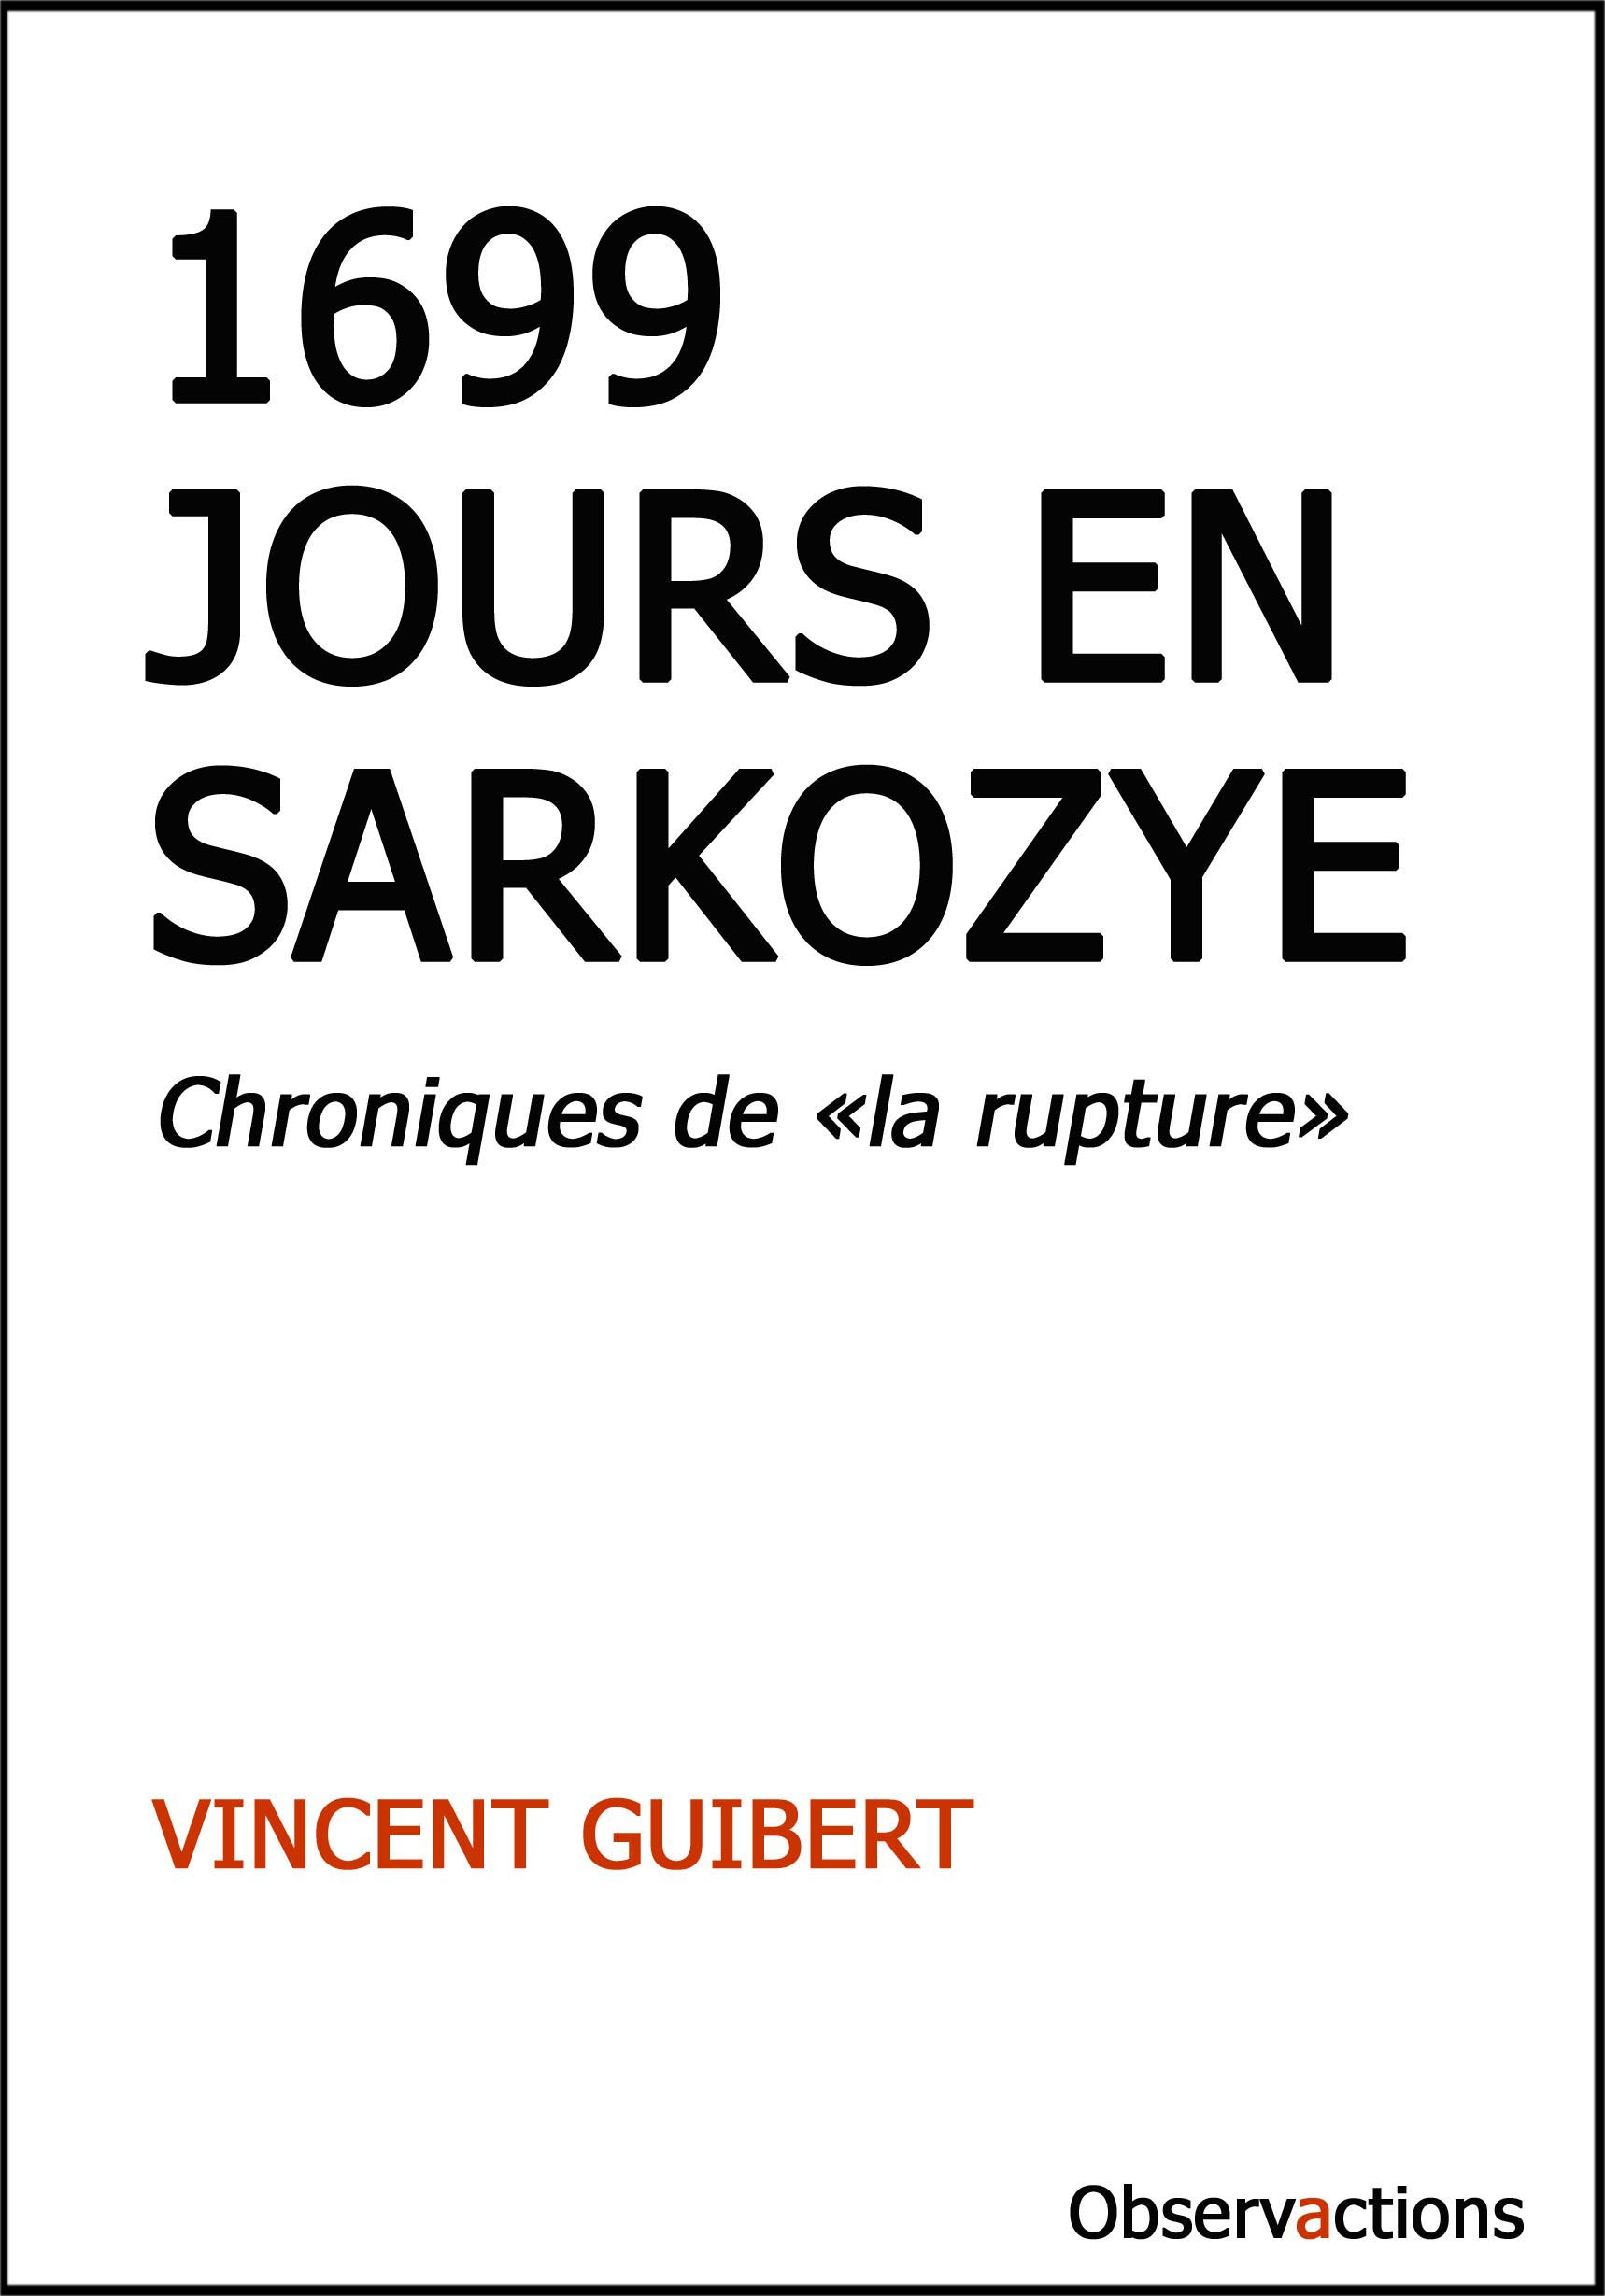 1699 jours Sarkozye flash-back mandat